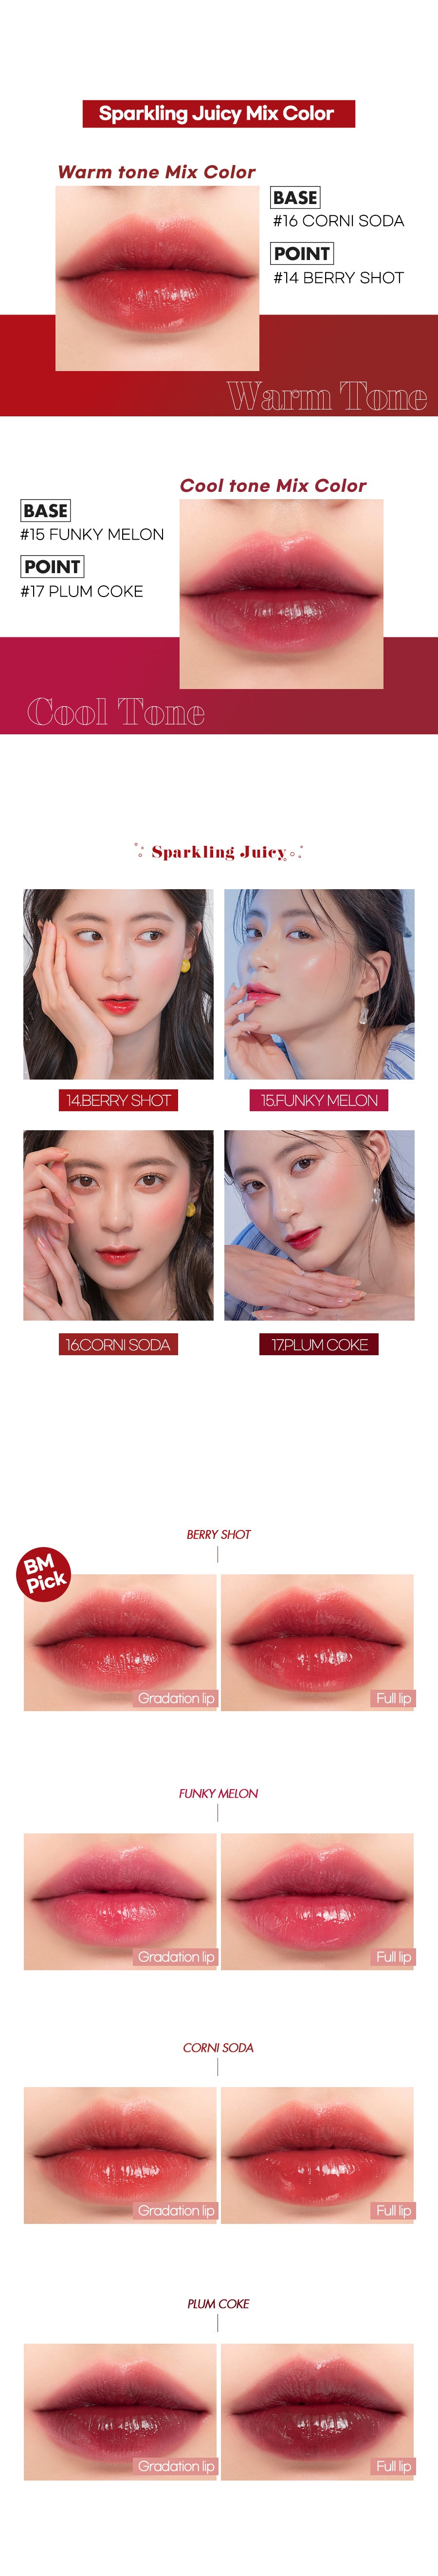 rom&nd JUICY LASTING TINT sparkling lipstick makeup cosmetic k beauty shopping